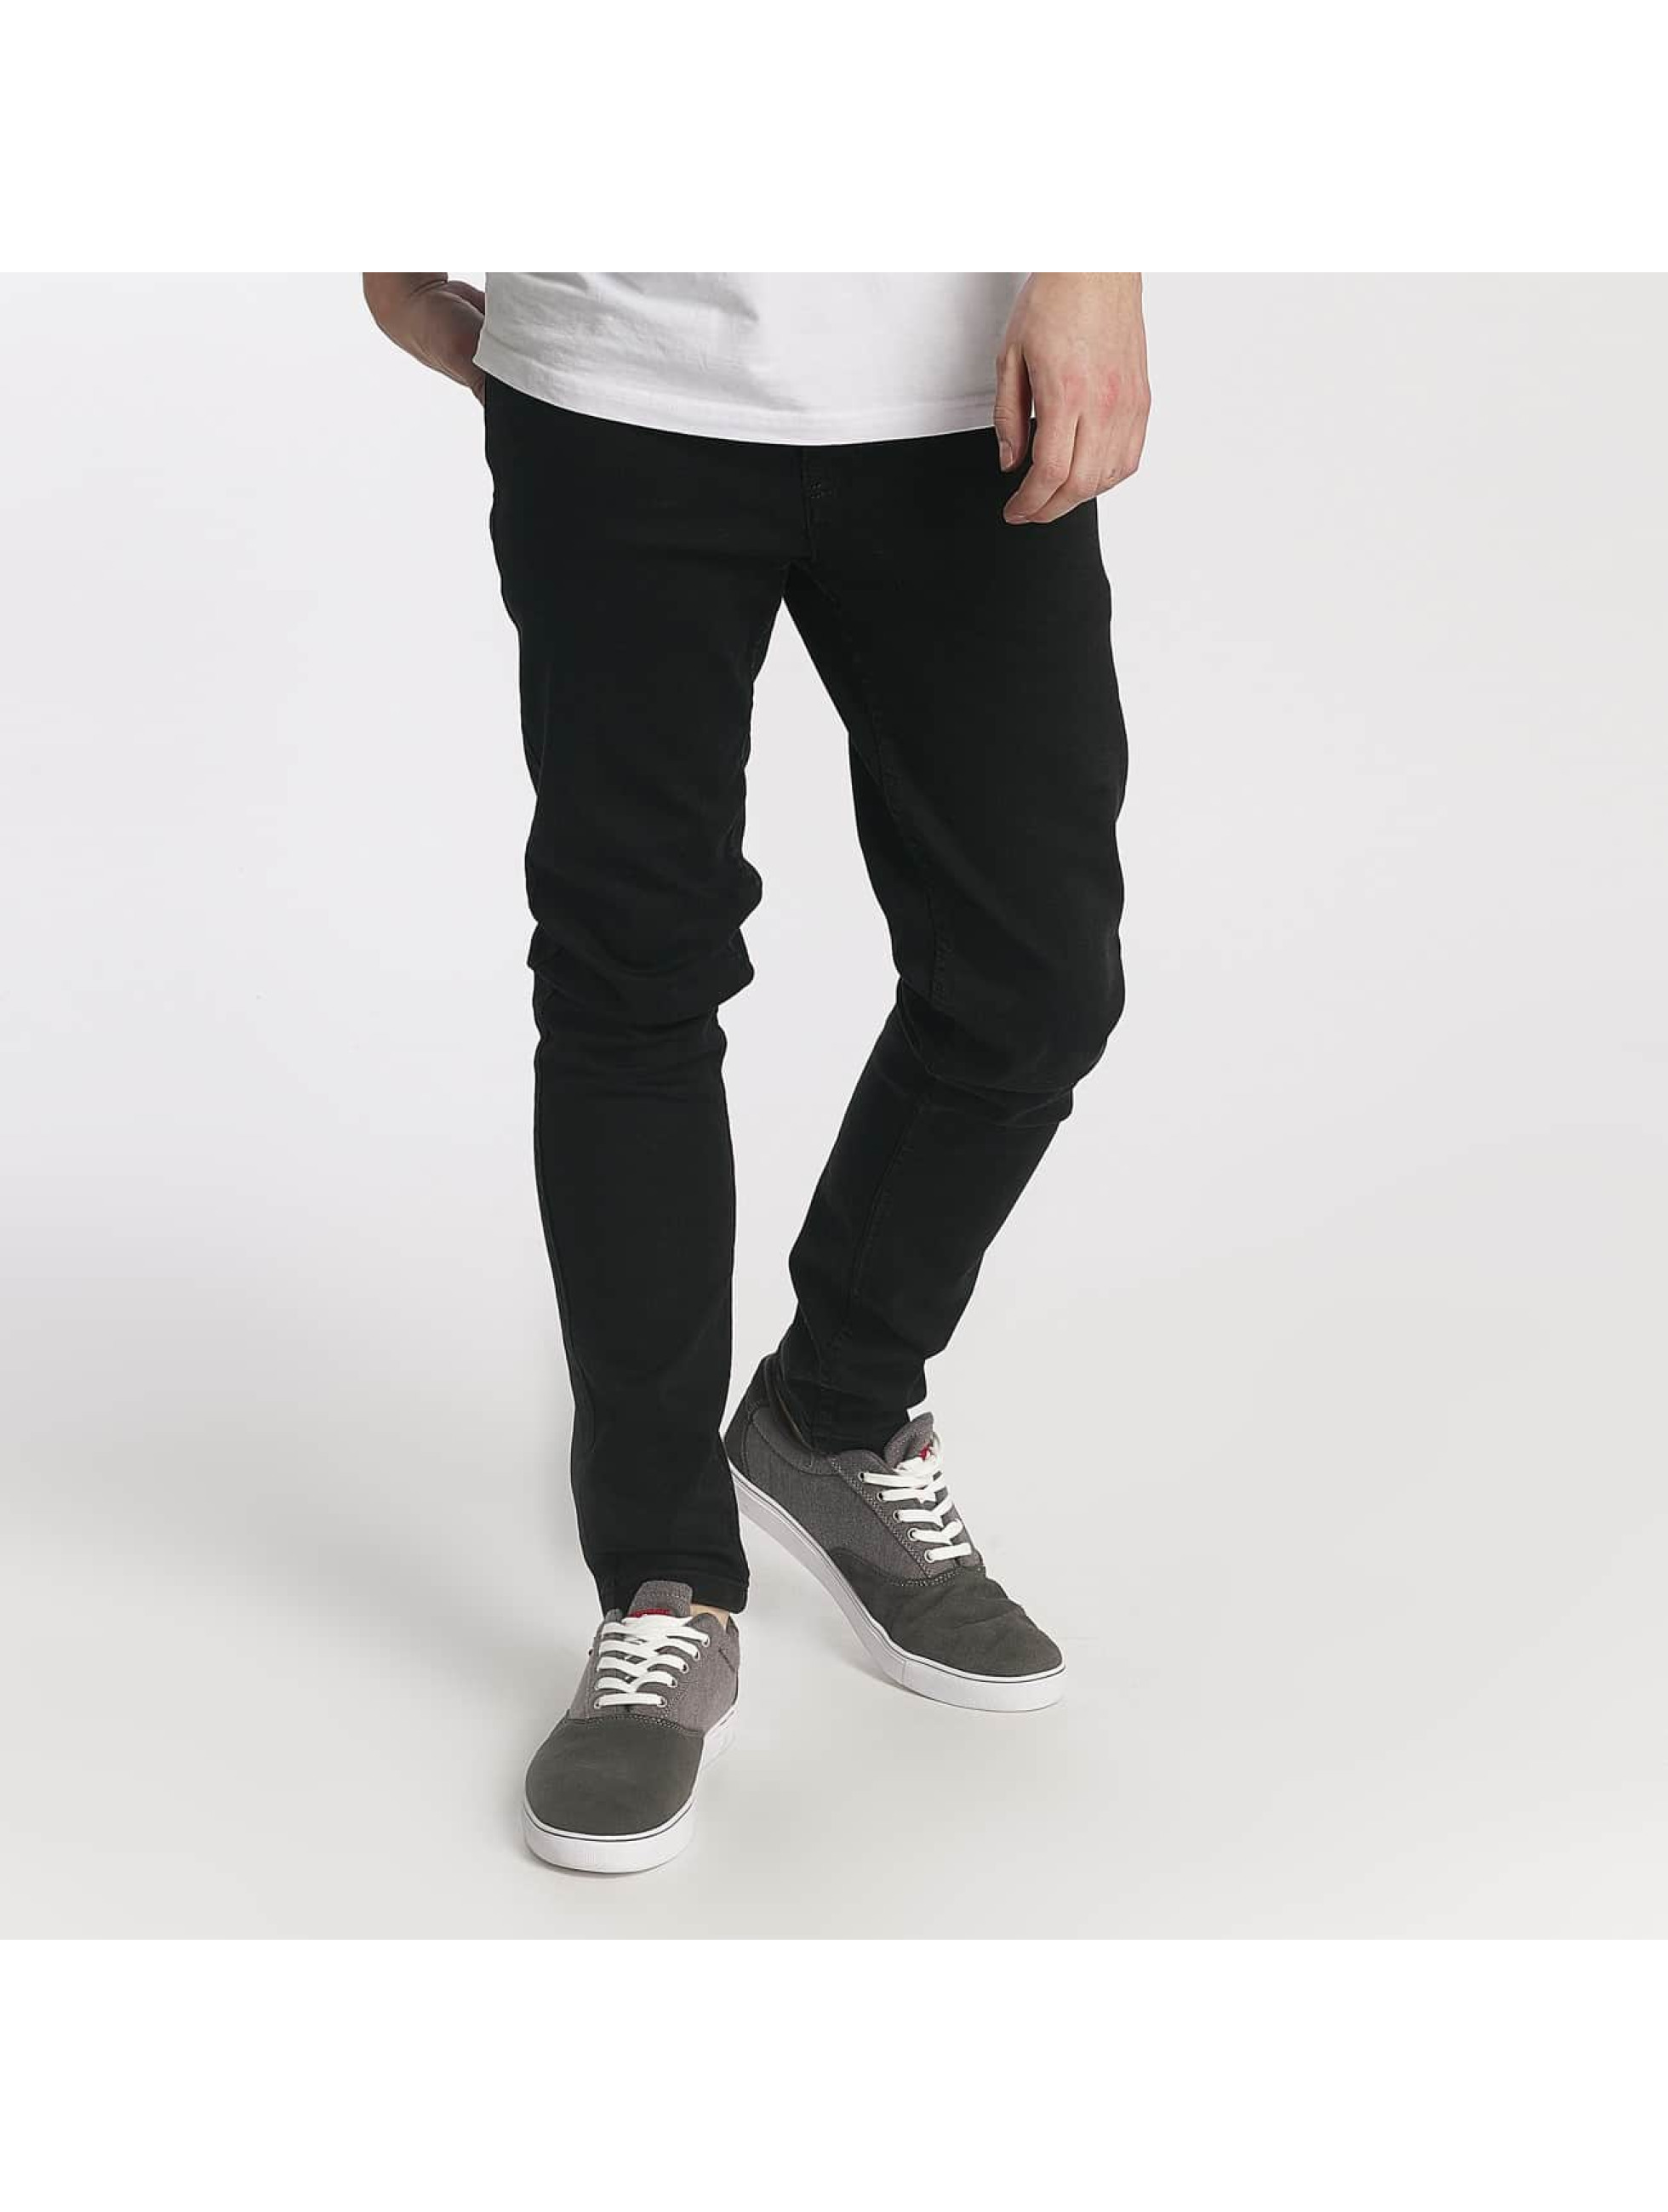 Just Rhyse / Slim Fit Jeans Ensenada in black W 33 L 34